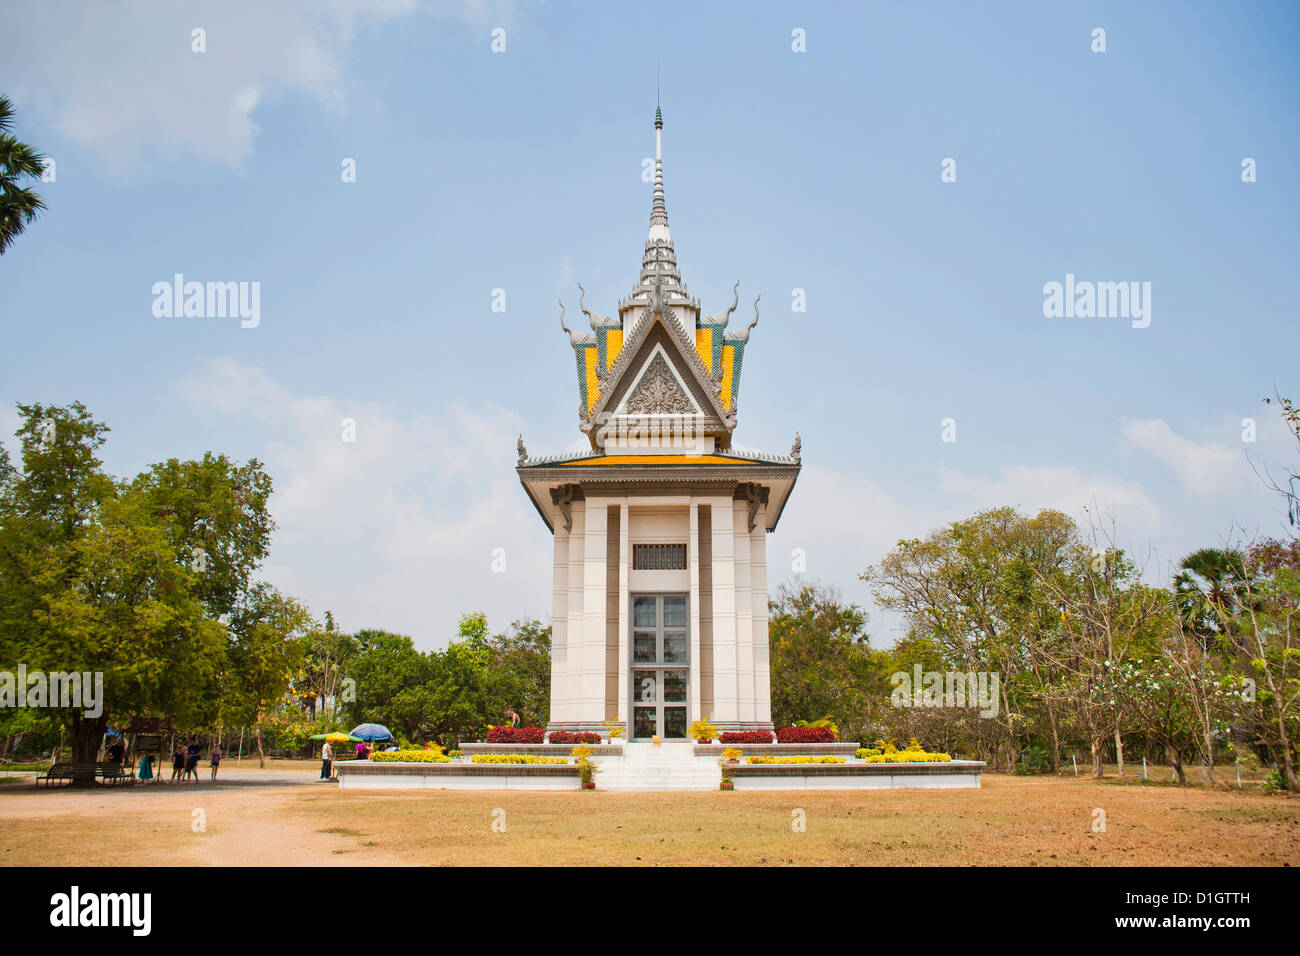 Memorial monument at The Killing Fields in Phnom Penh, Cambodia, Indochina, Southeast Asia, Asia - Stock Image